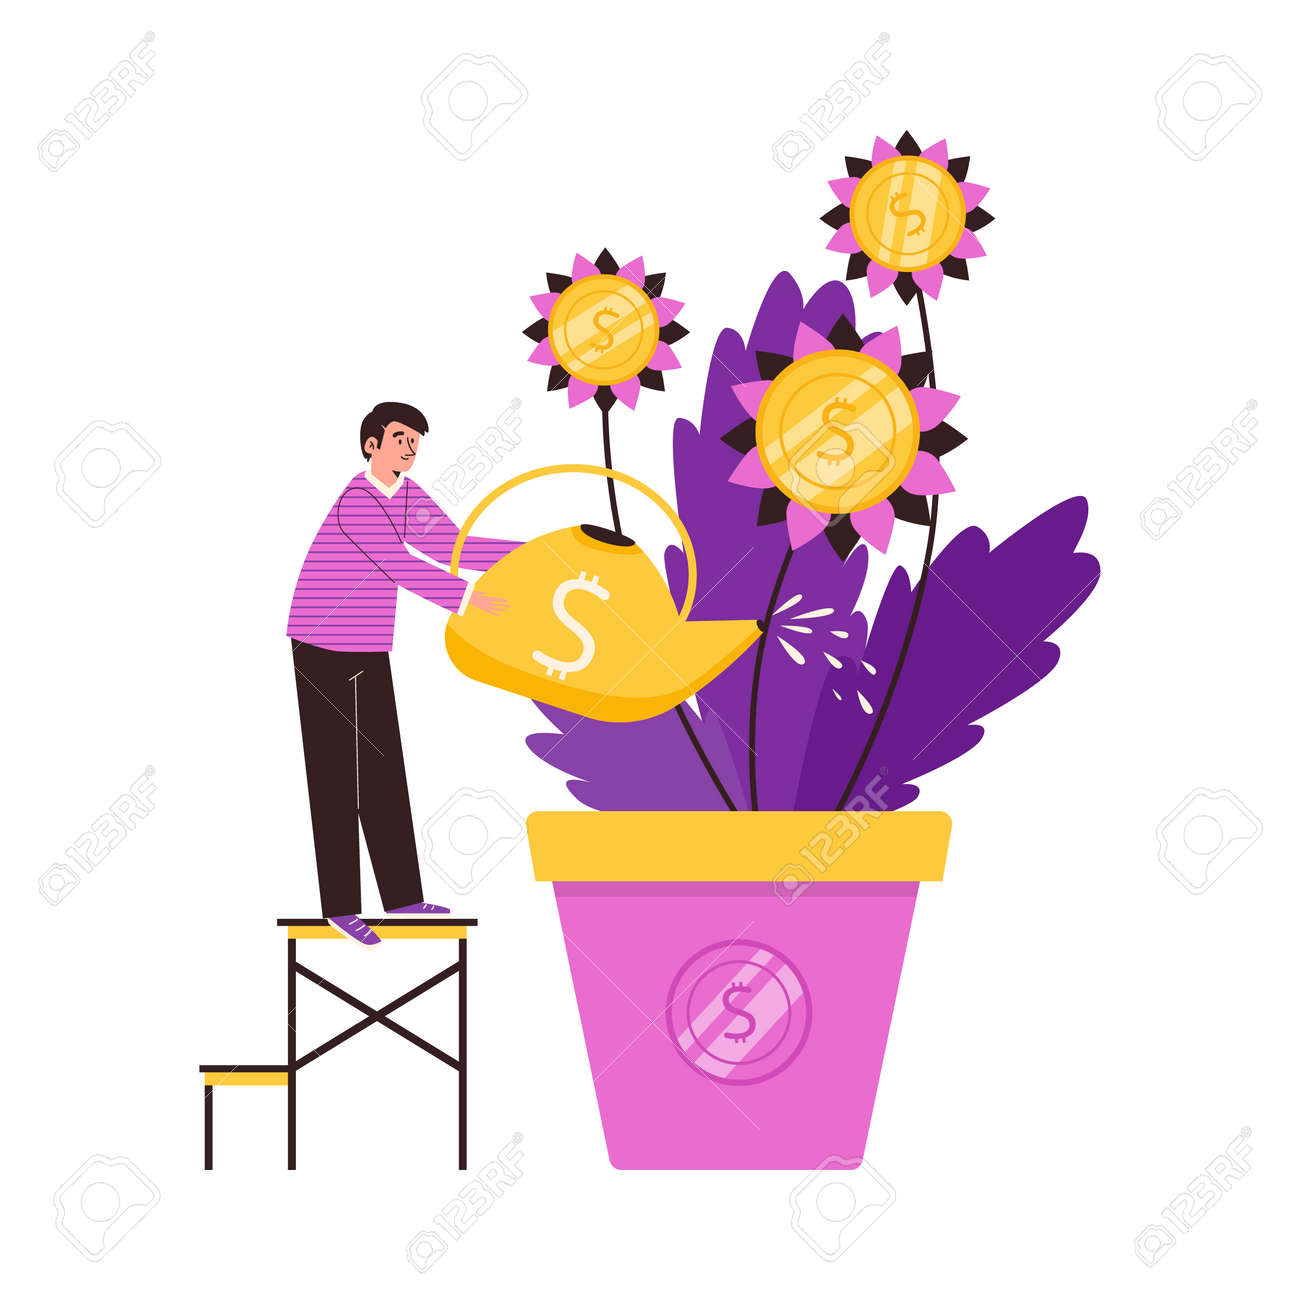 Business man care to money tree growing in pot a vector illustration - 173358207